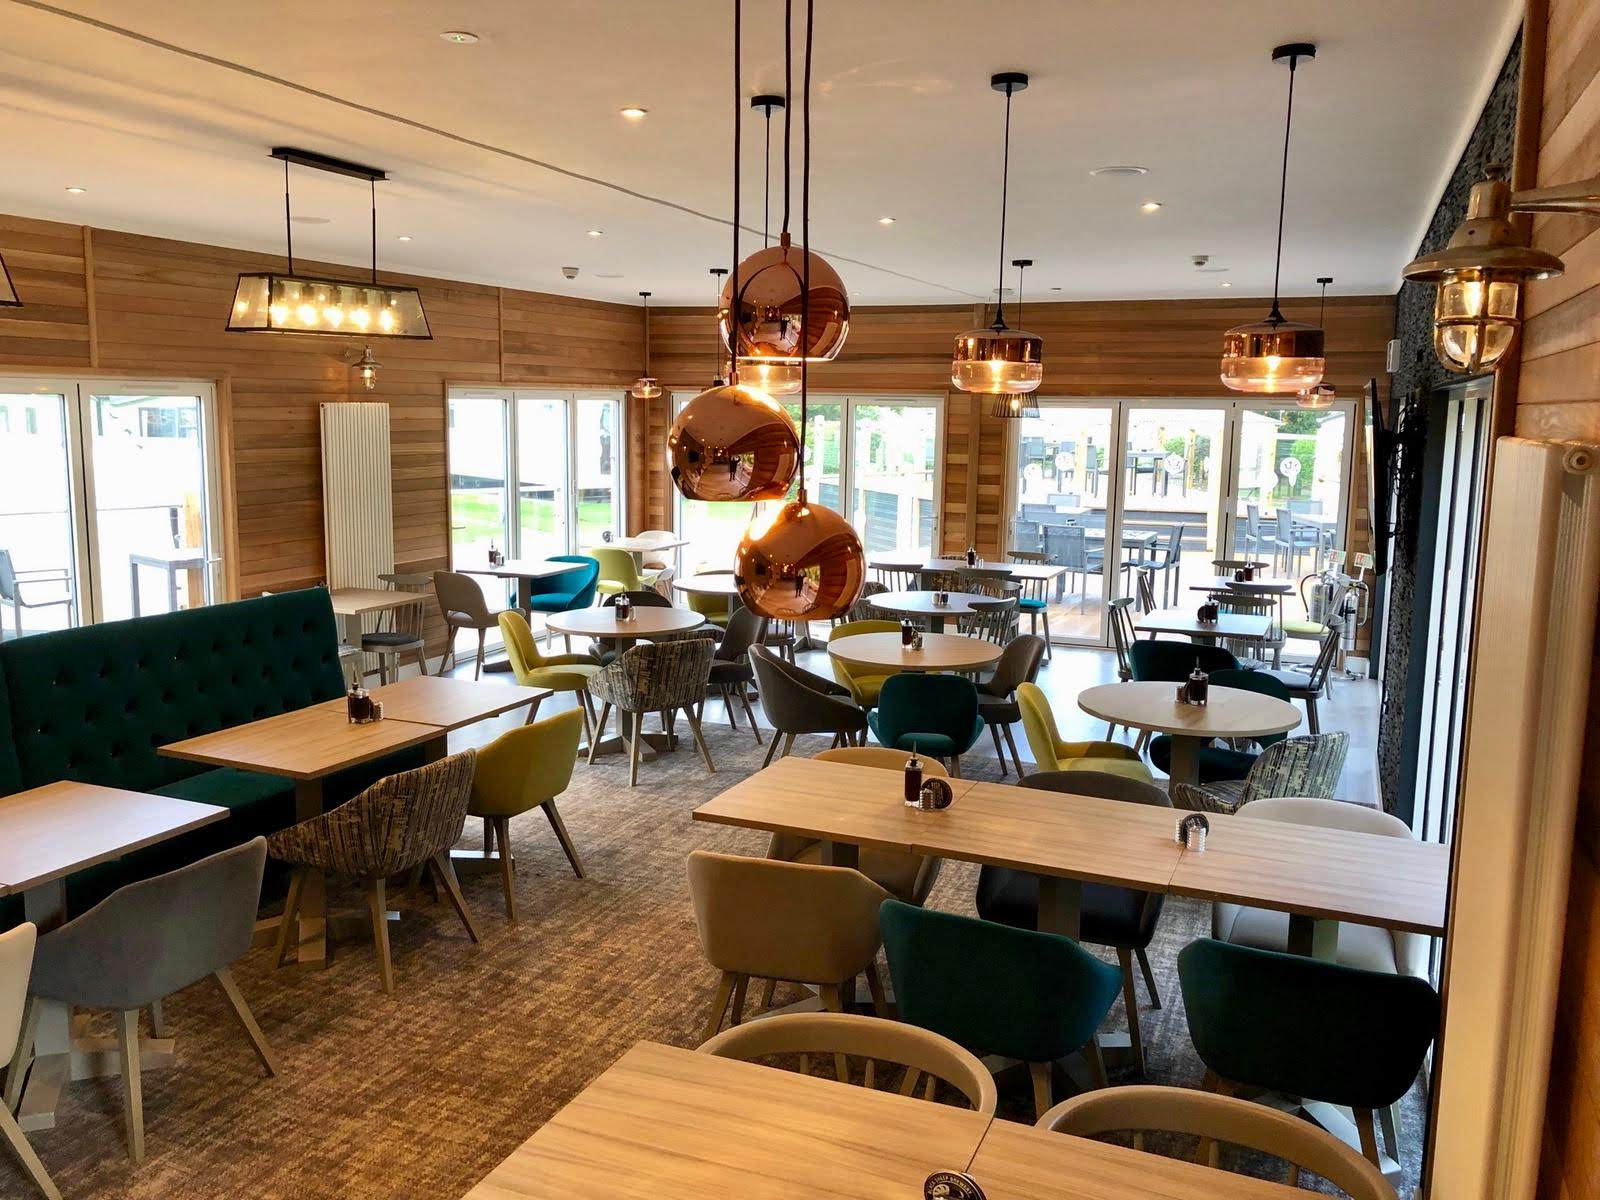 Brookhouse restaurant and bar, Rivers Edge holiday resort, Leisure Resorts